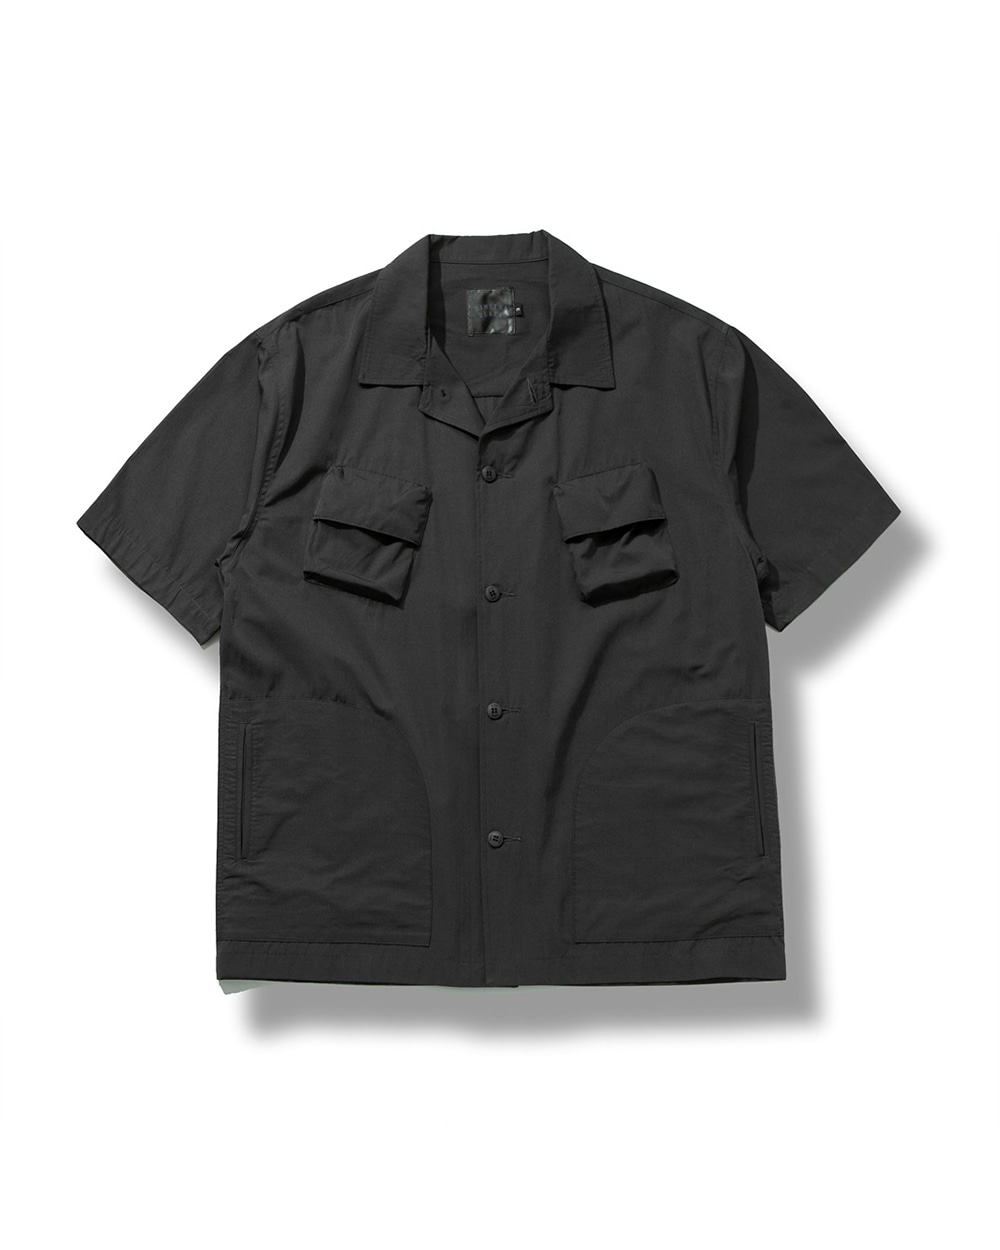 C/P FATIGUE SHIRTS CHARCOAL